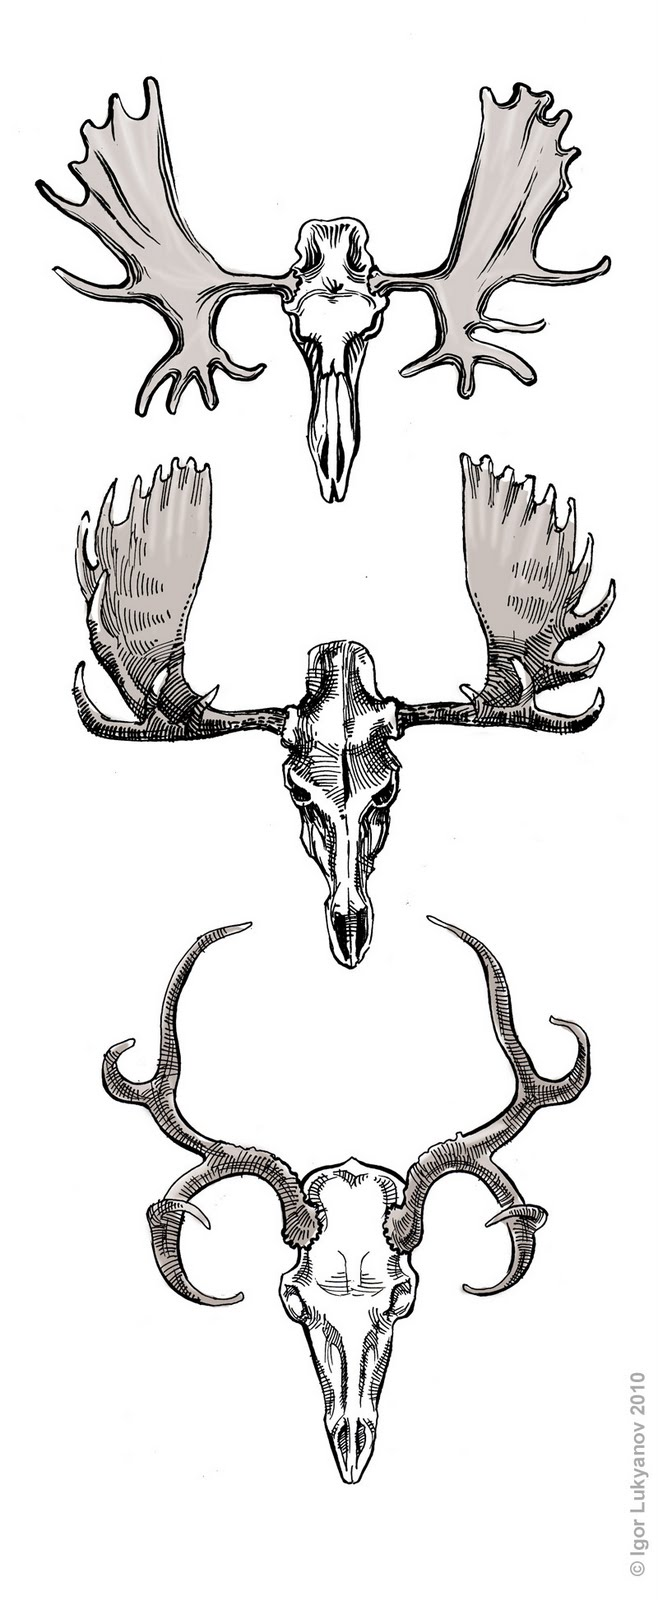 Moose skull drawing - photo#9